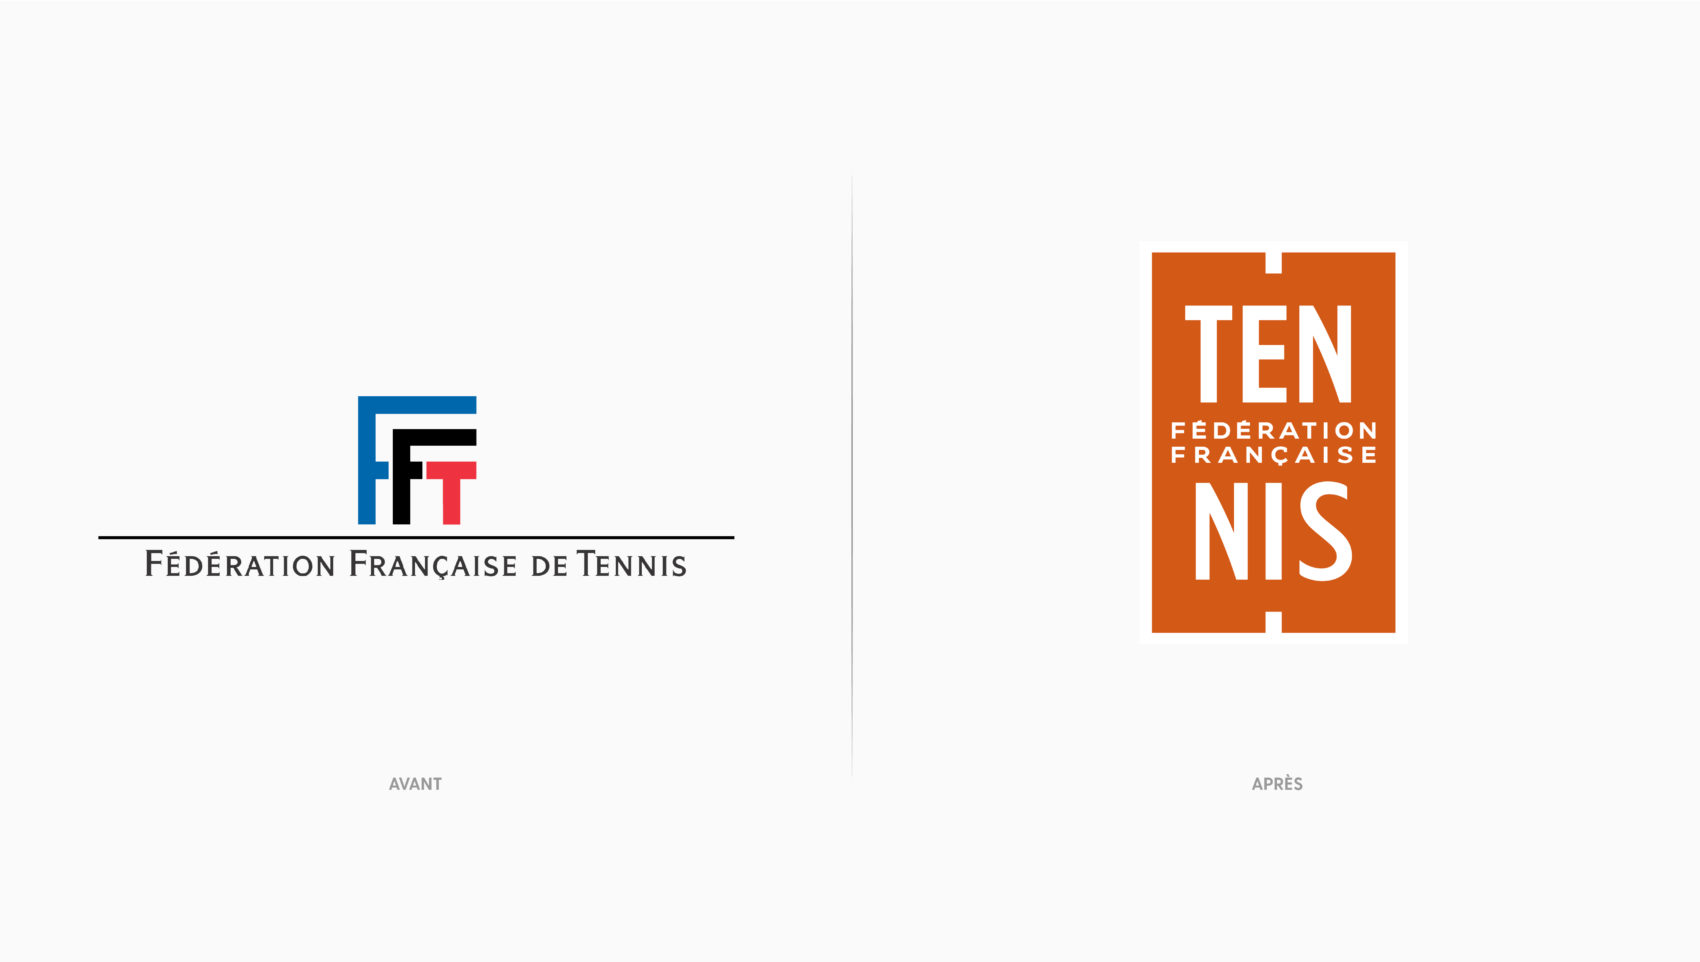 Projet_project_realisation_FFT_federation_francaise_french_tennis_logos